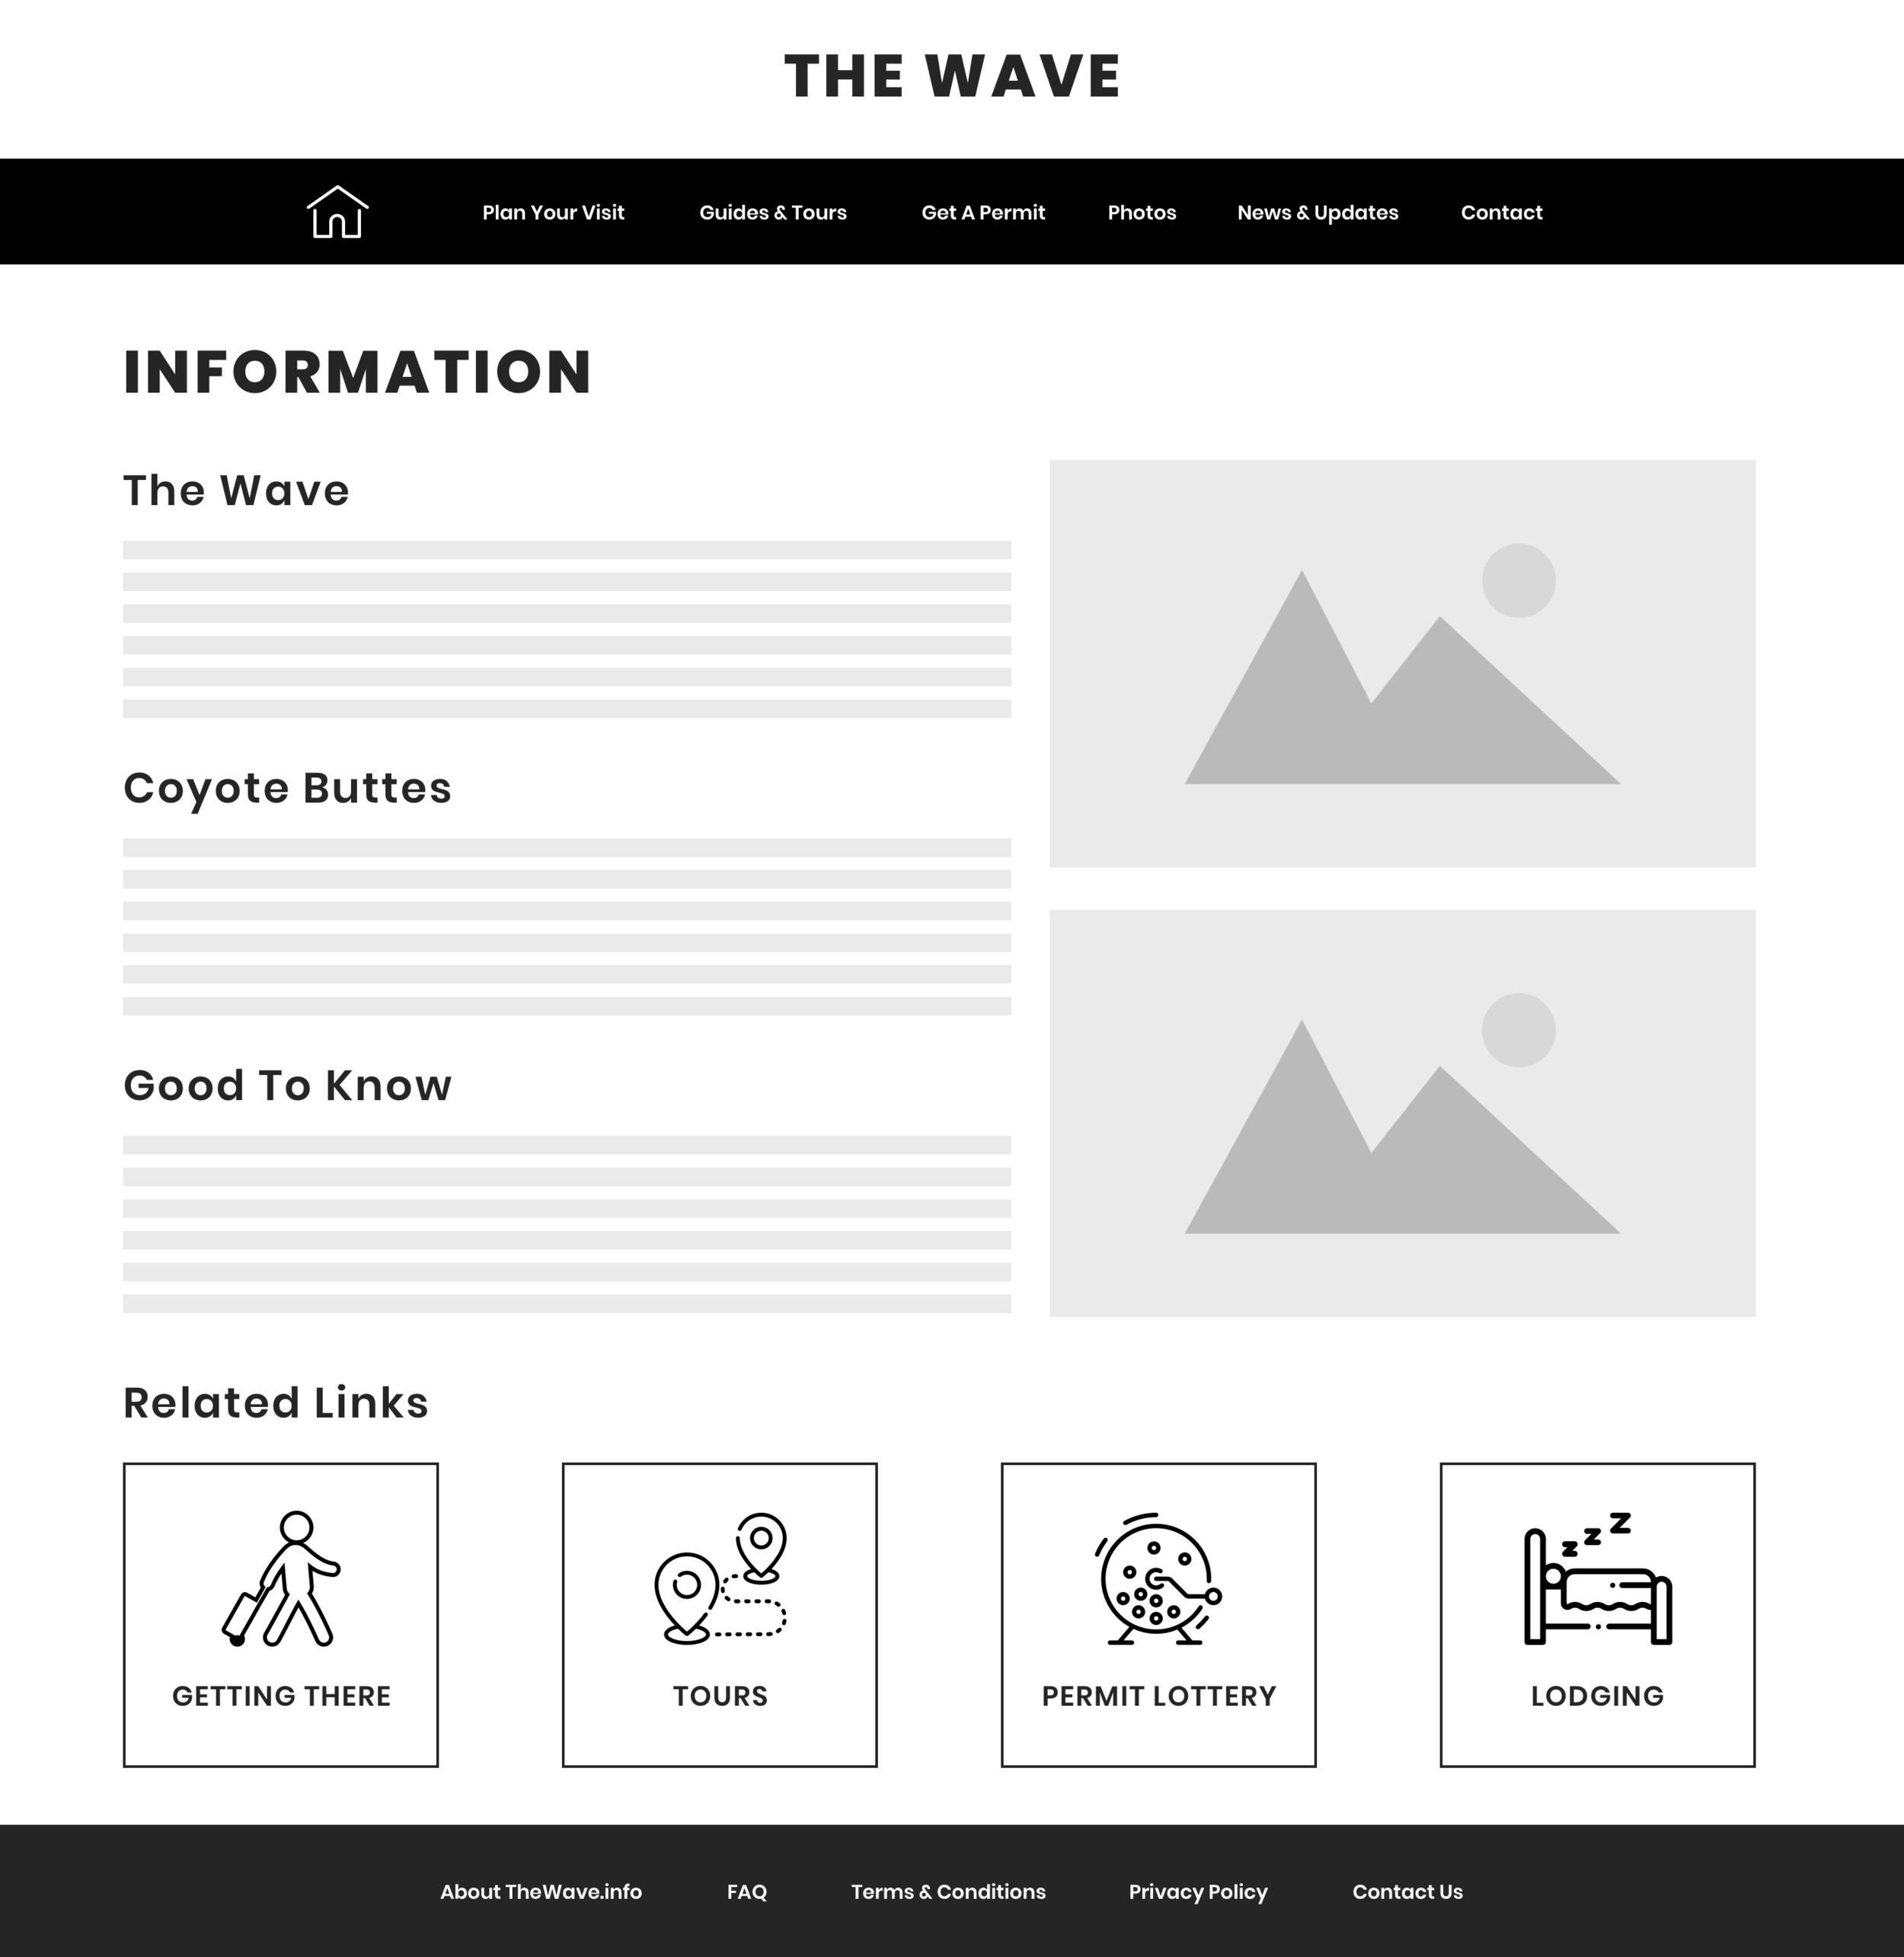 Information Page  - The new information page combined content found across several pages that was essential for the user to find upon initially expressing interest in information on the wave.